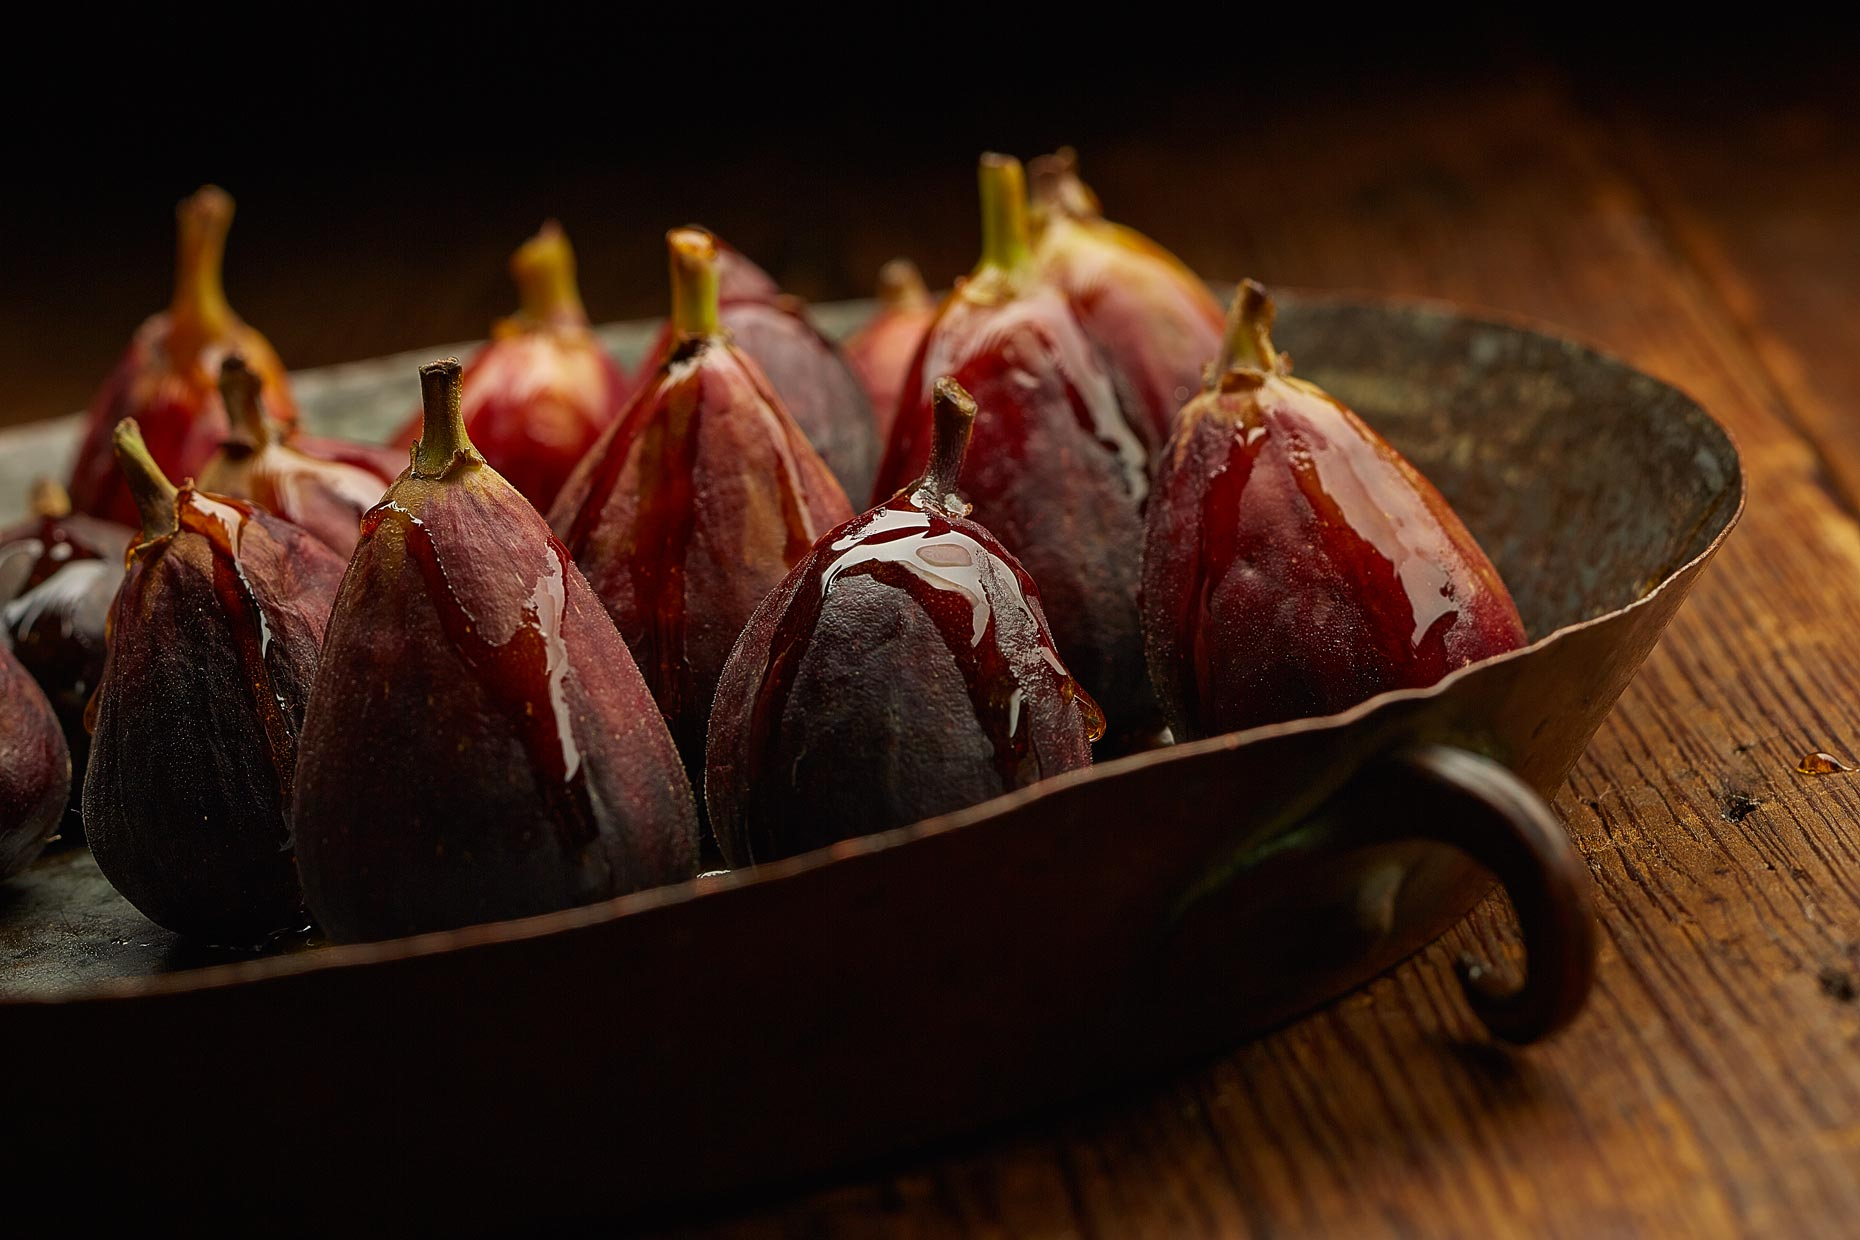 Dessert Photography | Figs with honey